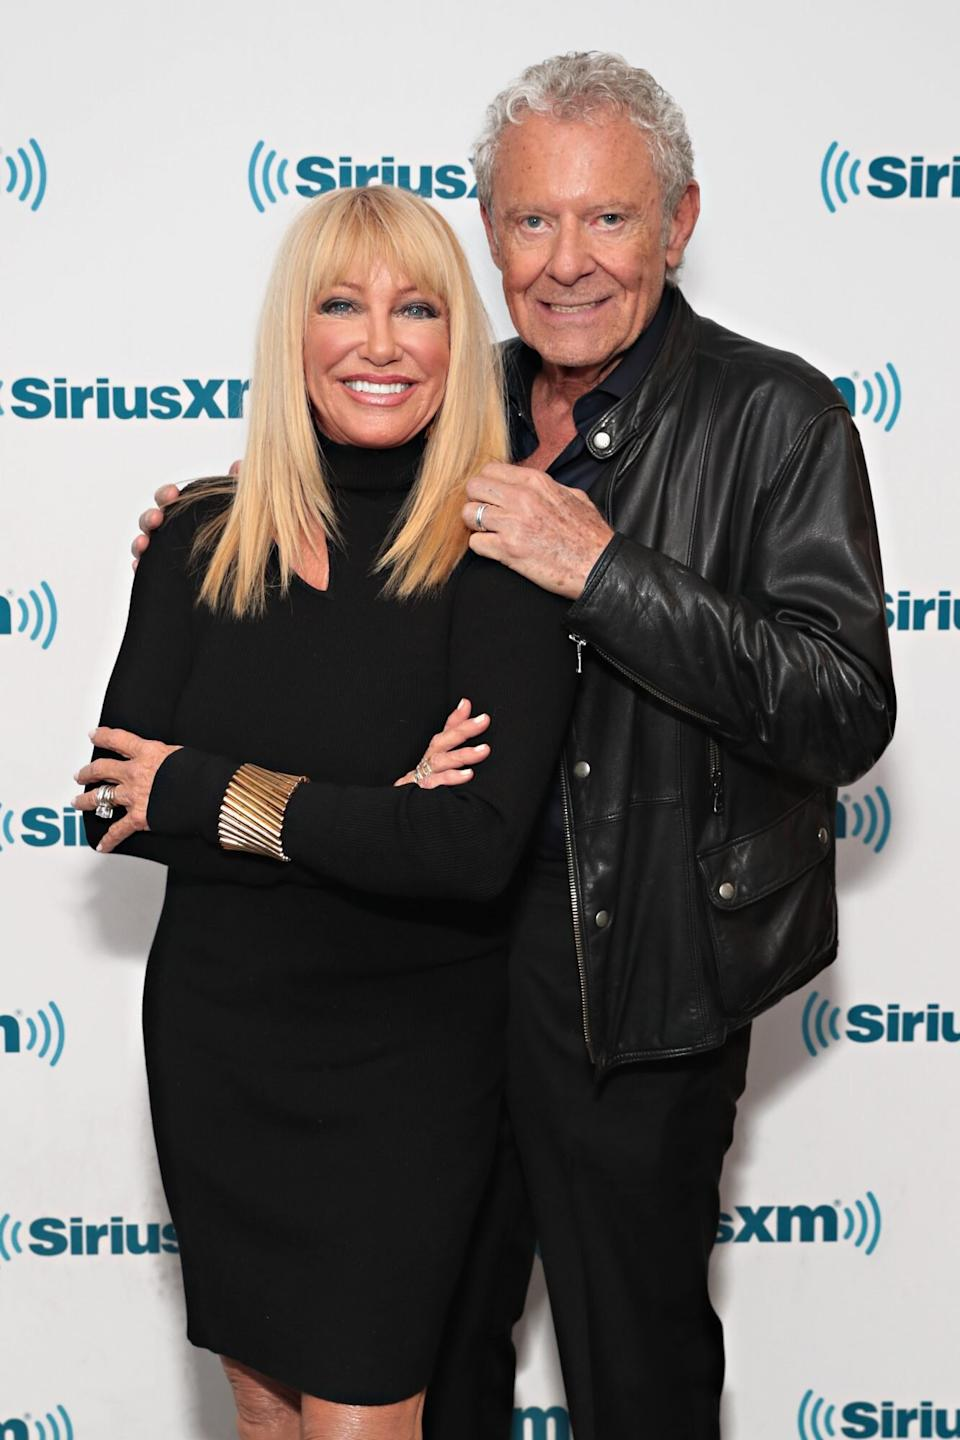 Suzanne Somers Wants to Strip Down for Playboy at 75